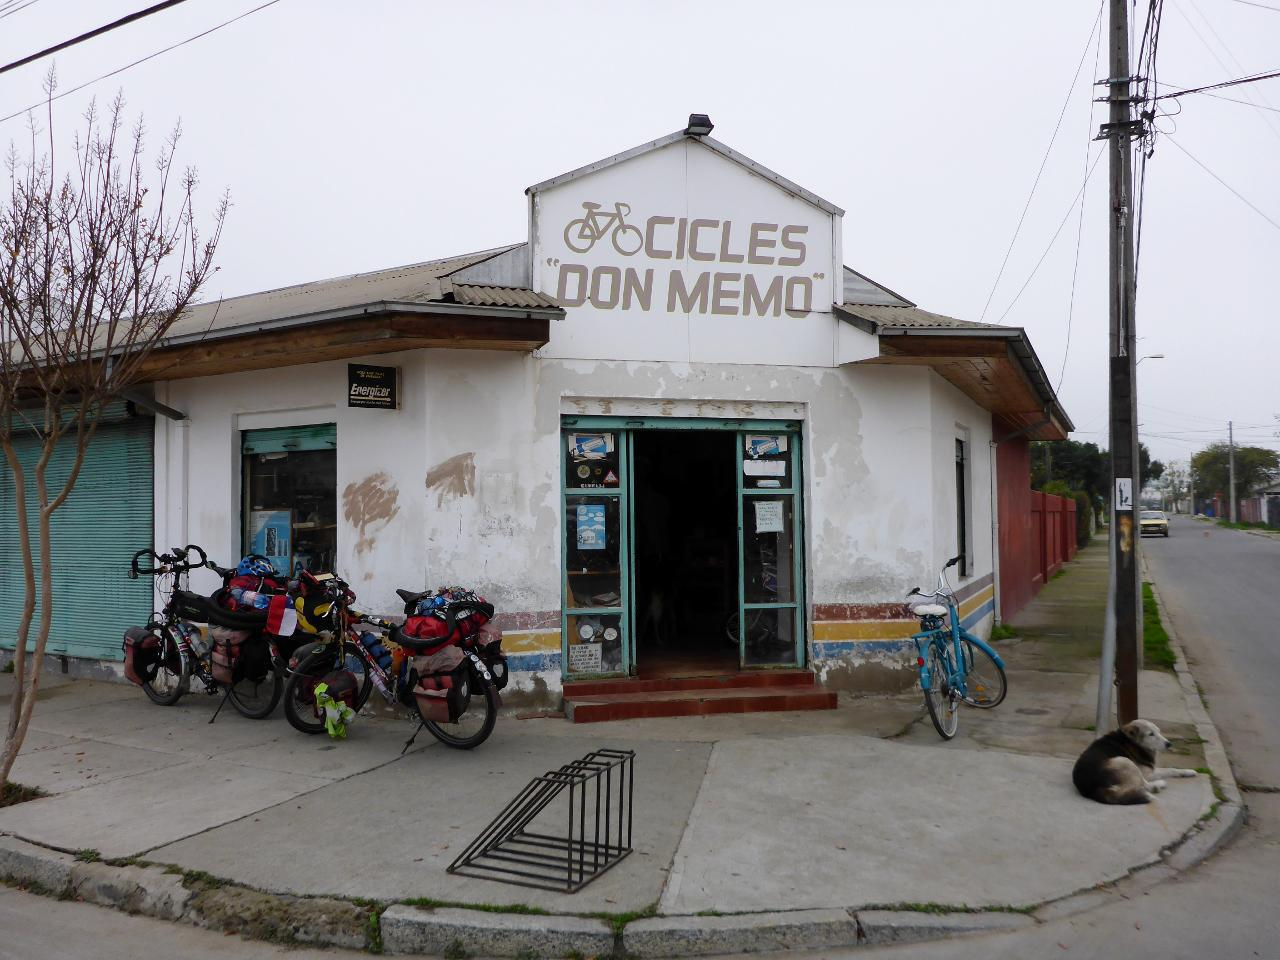 """We were down to one spare tube so I asked a guy riding a bike where a bike shops was. Another random English speaking Chilean had us follow him to this bike shop. 26""""x2"""" presta is very easy to find around the world."""